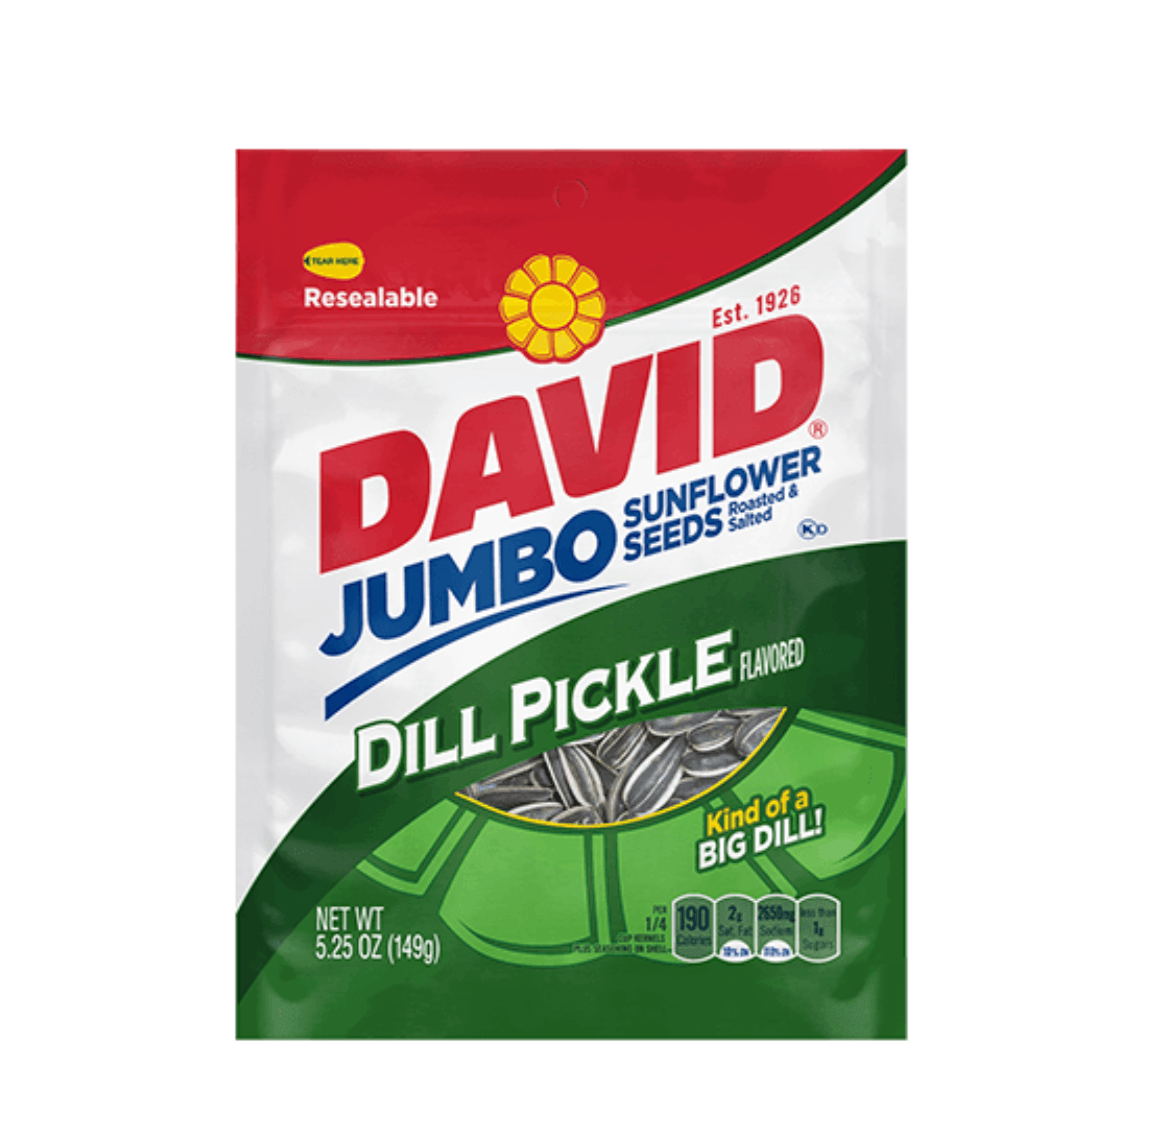 Pickle sunflower seeds